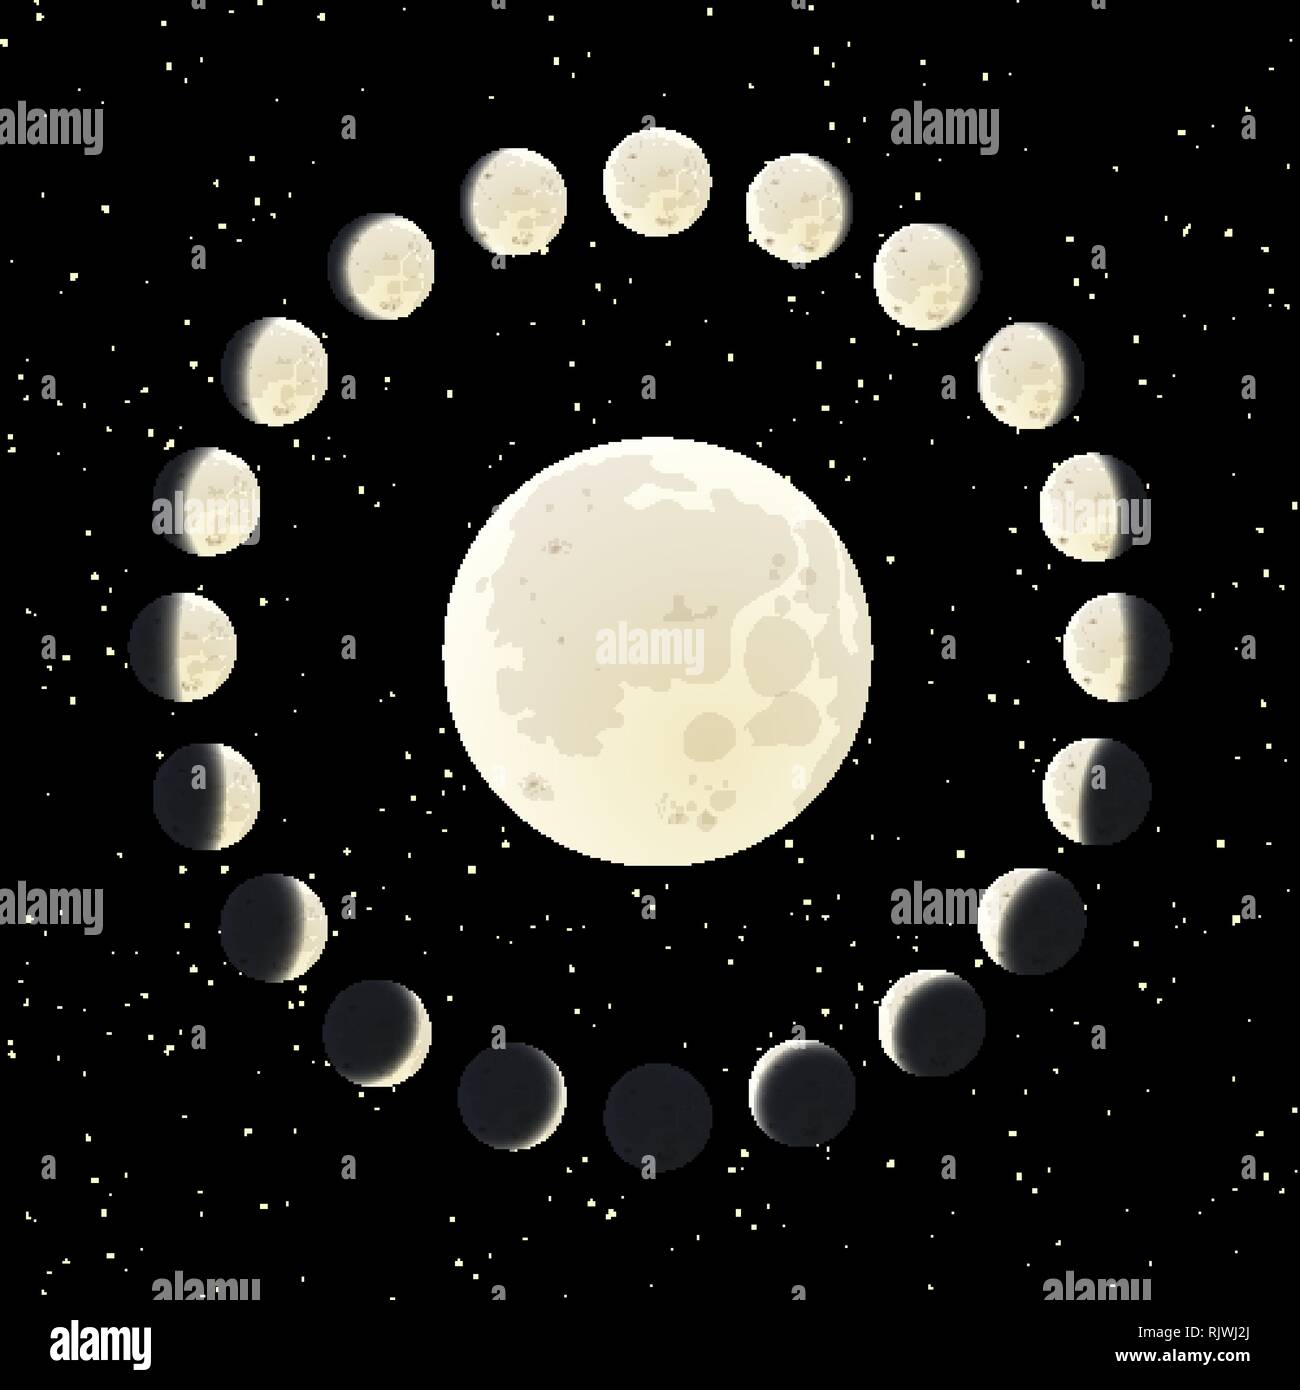 The Moon phase illustration with all range of the lunar life cycle - Stock Image